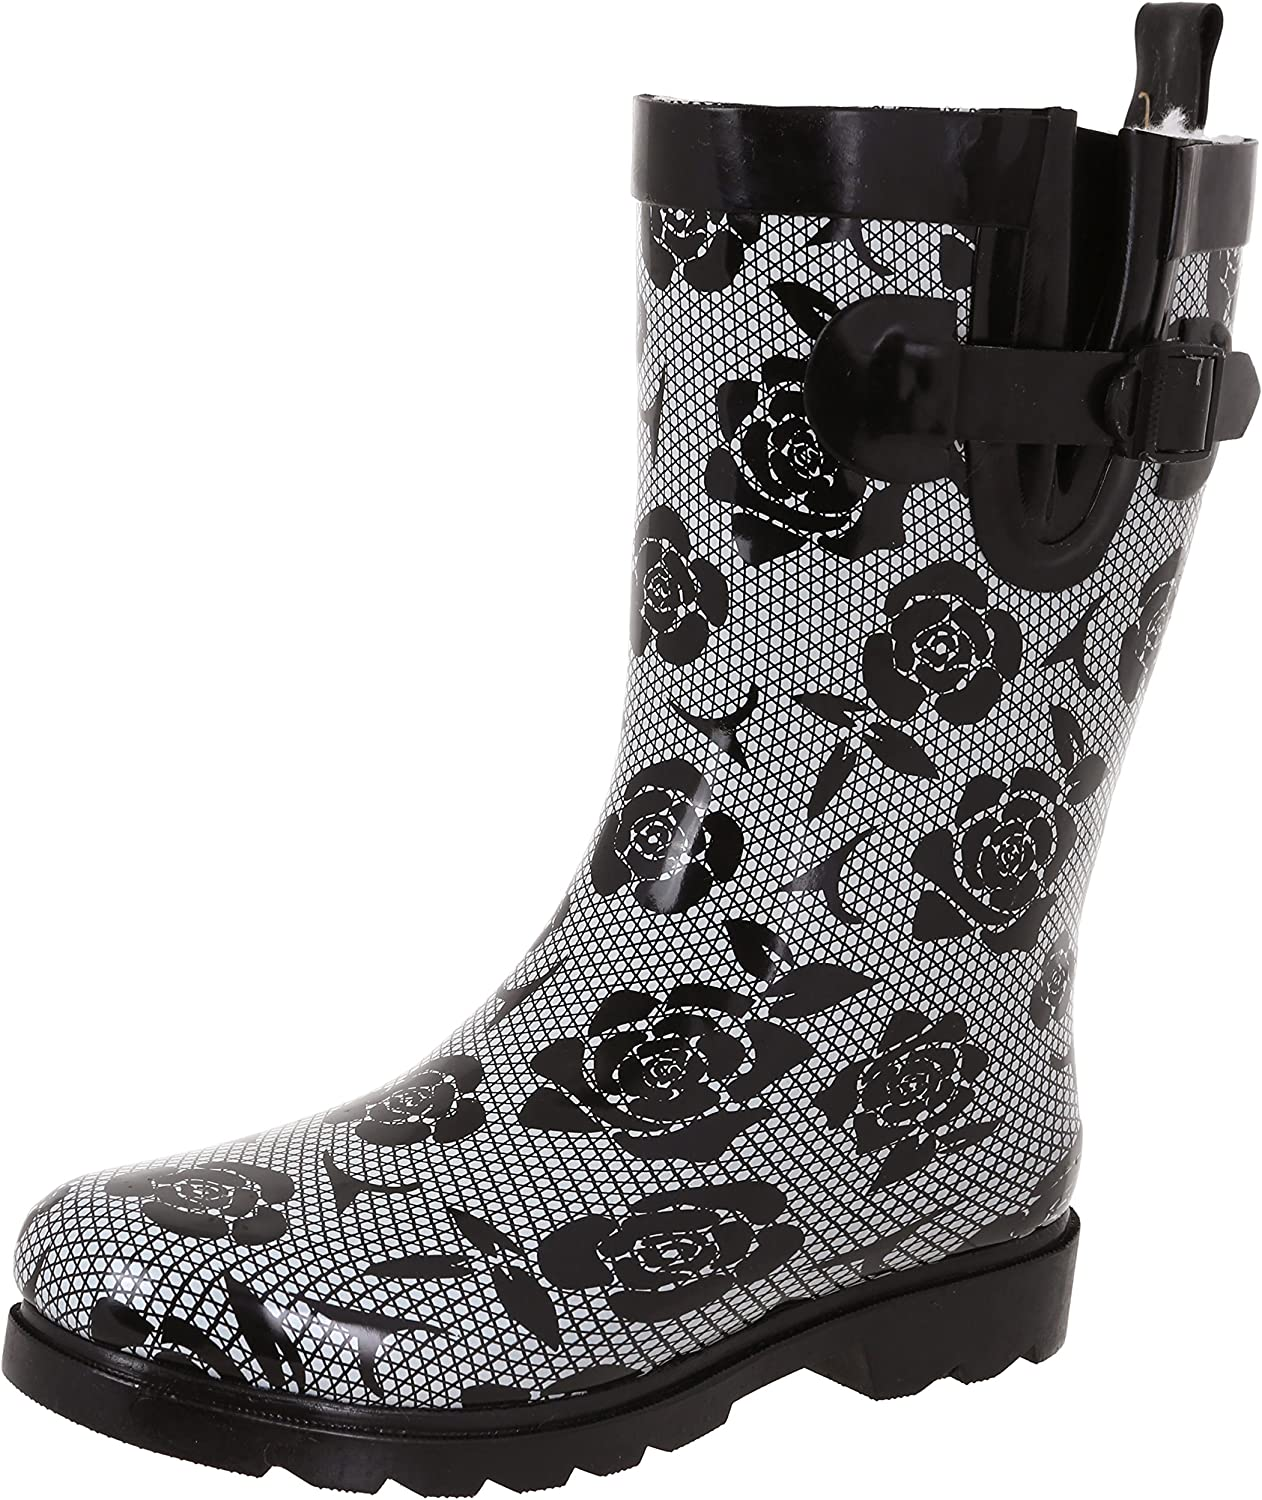 Capelli New York Ladies Shiny Lined Cozy Rubber Rain Boots